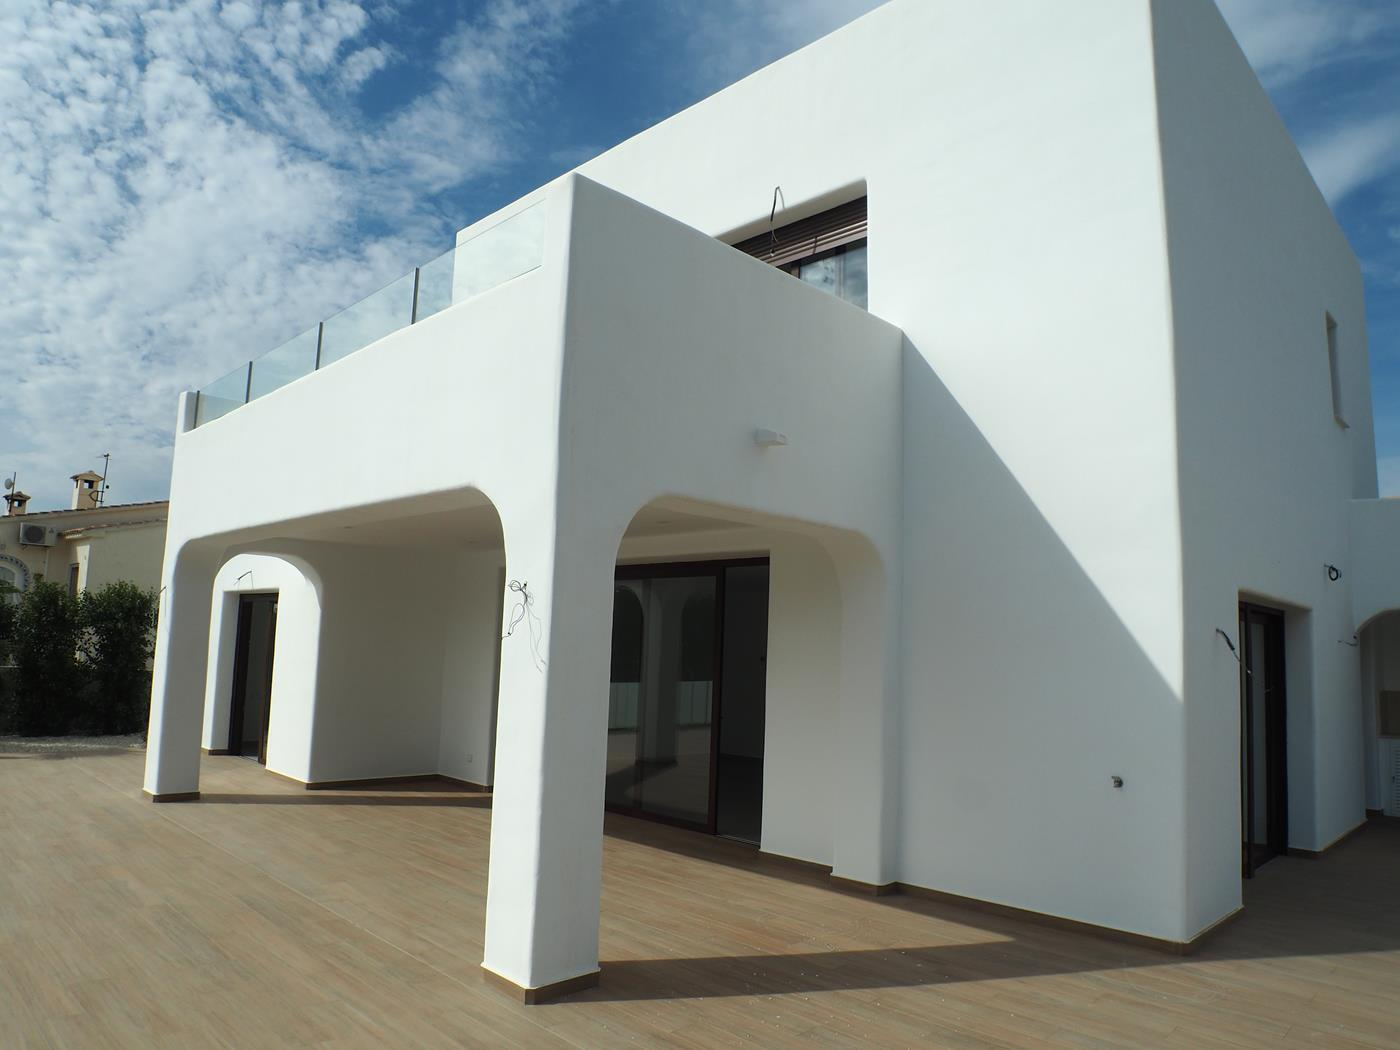 Fotogallerij - 23 - Exceptional homes in the Costa Blanca. Unparalleled Service. Exceptional properties in the Costa Blanca